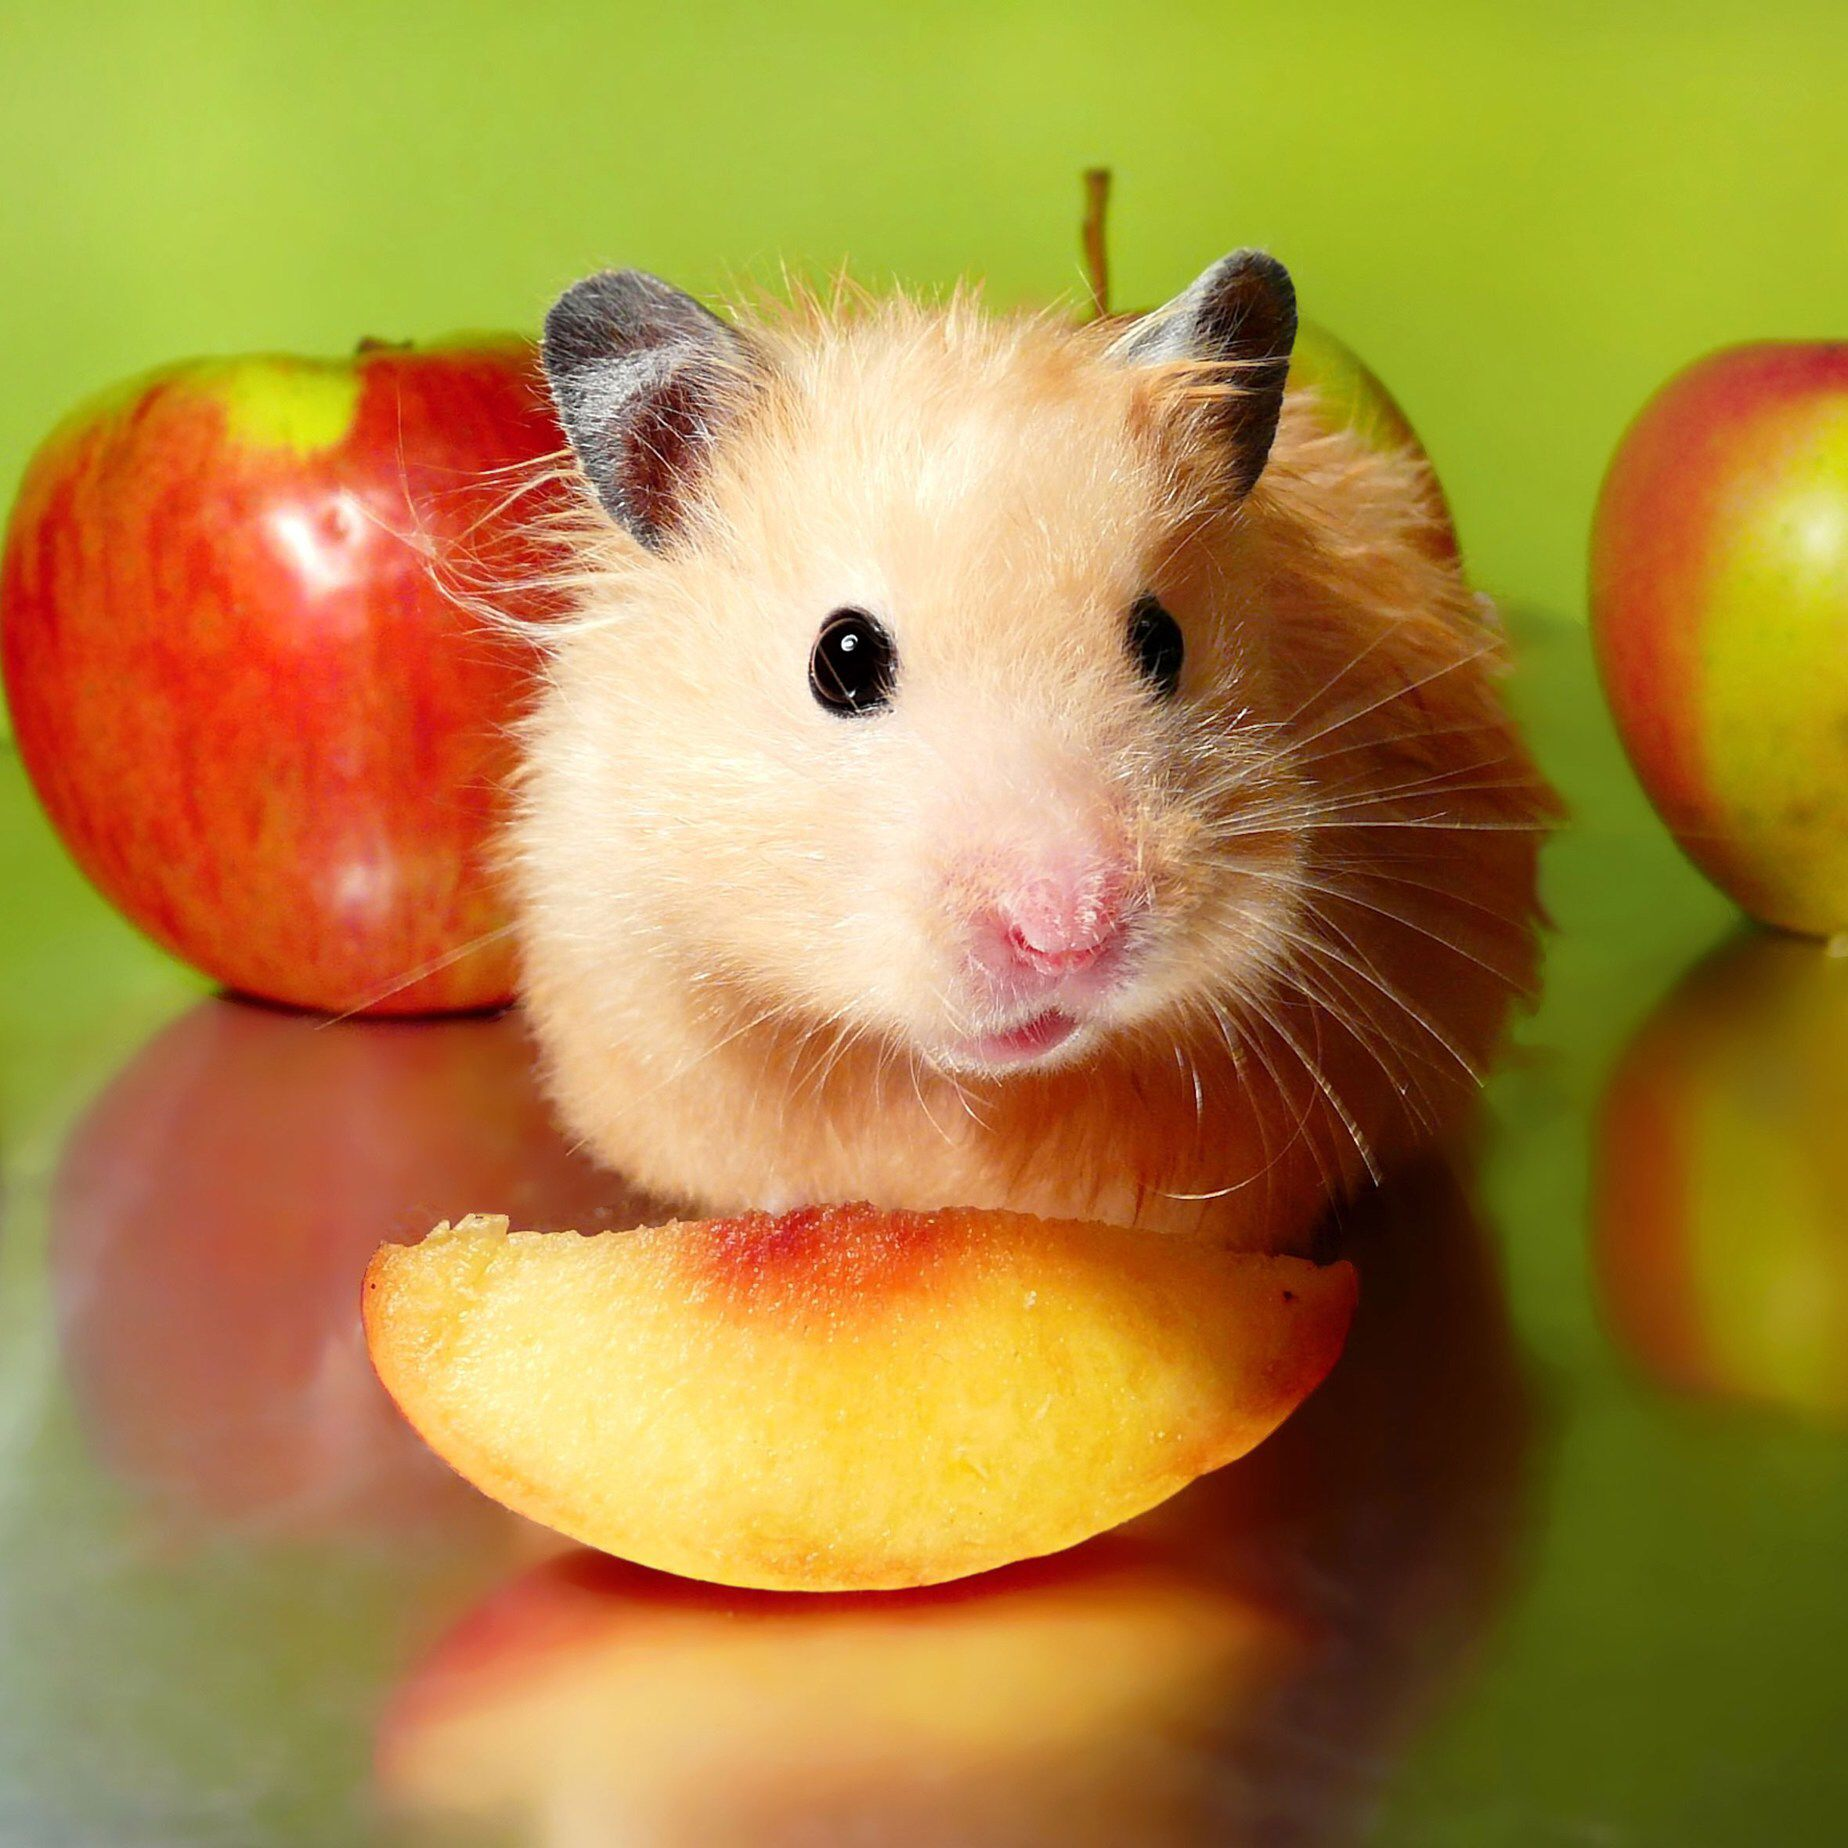 Pin By Grey On Adorable Animals Small Pets Hamster Pet Care